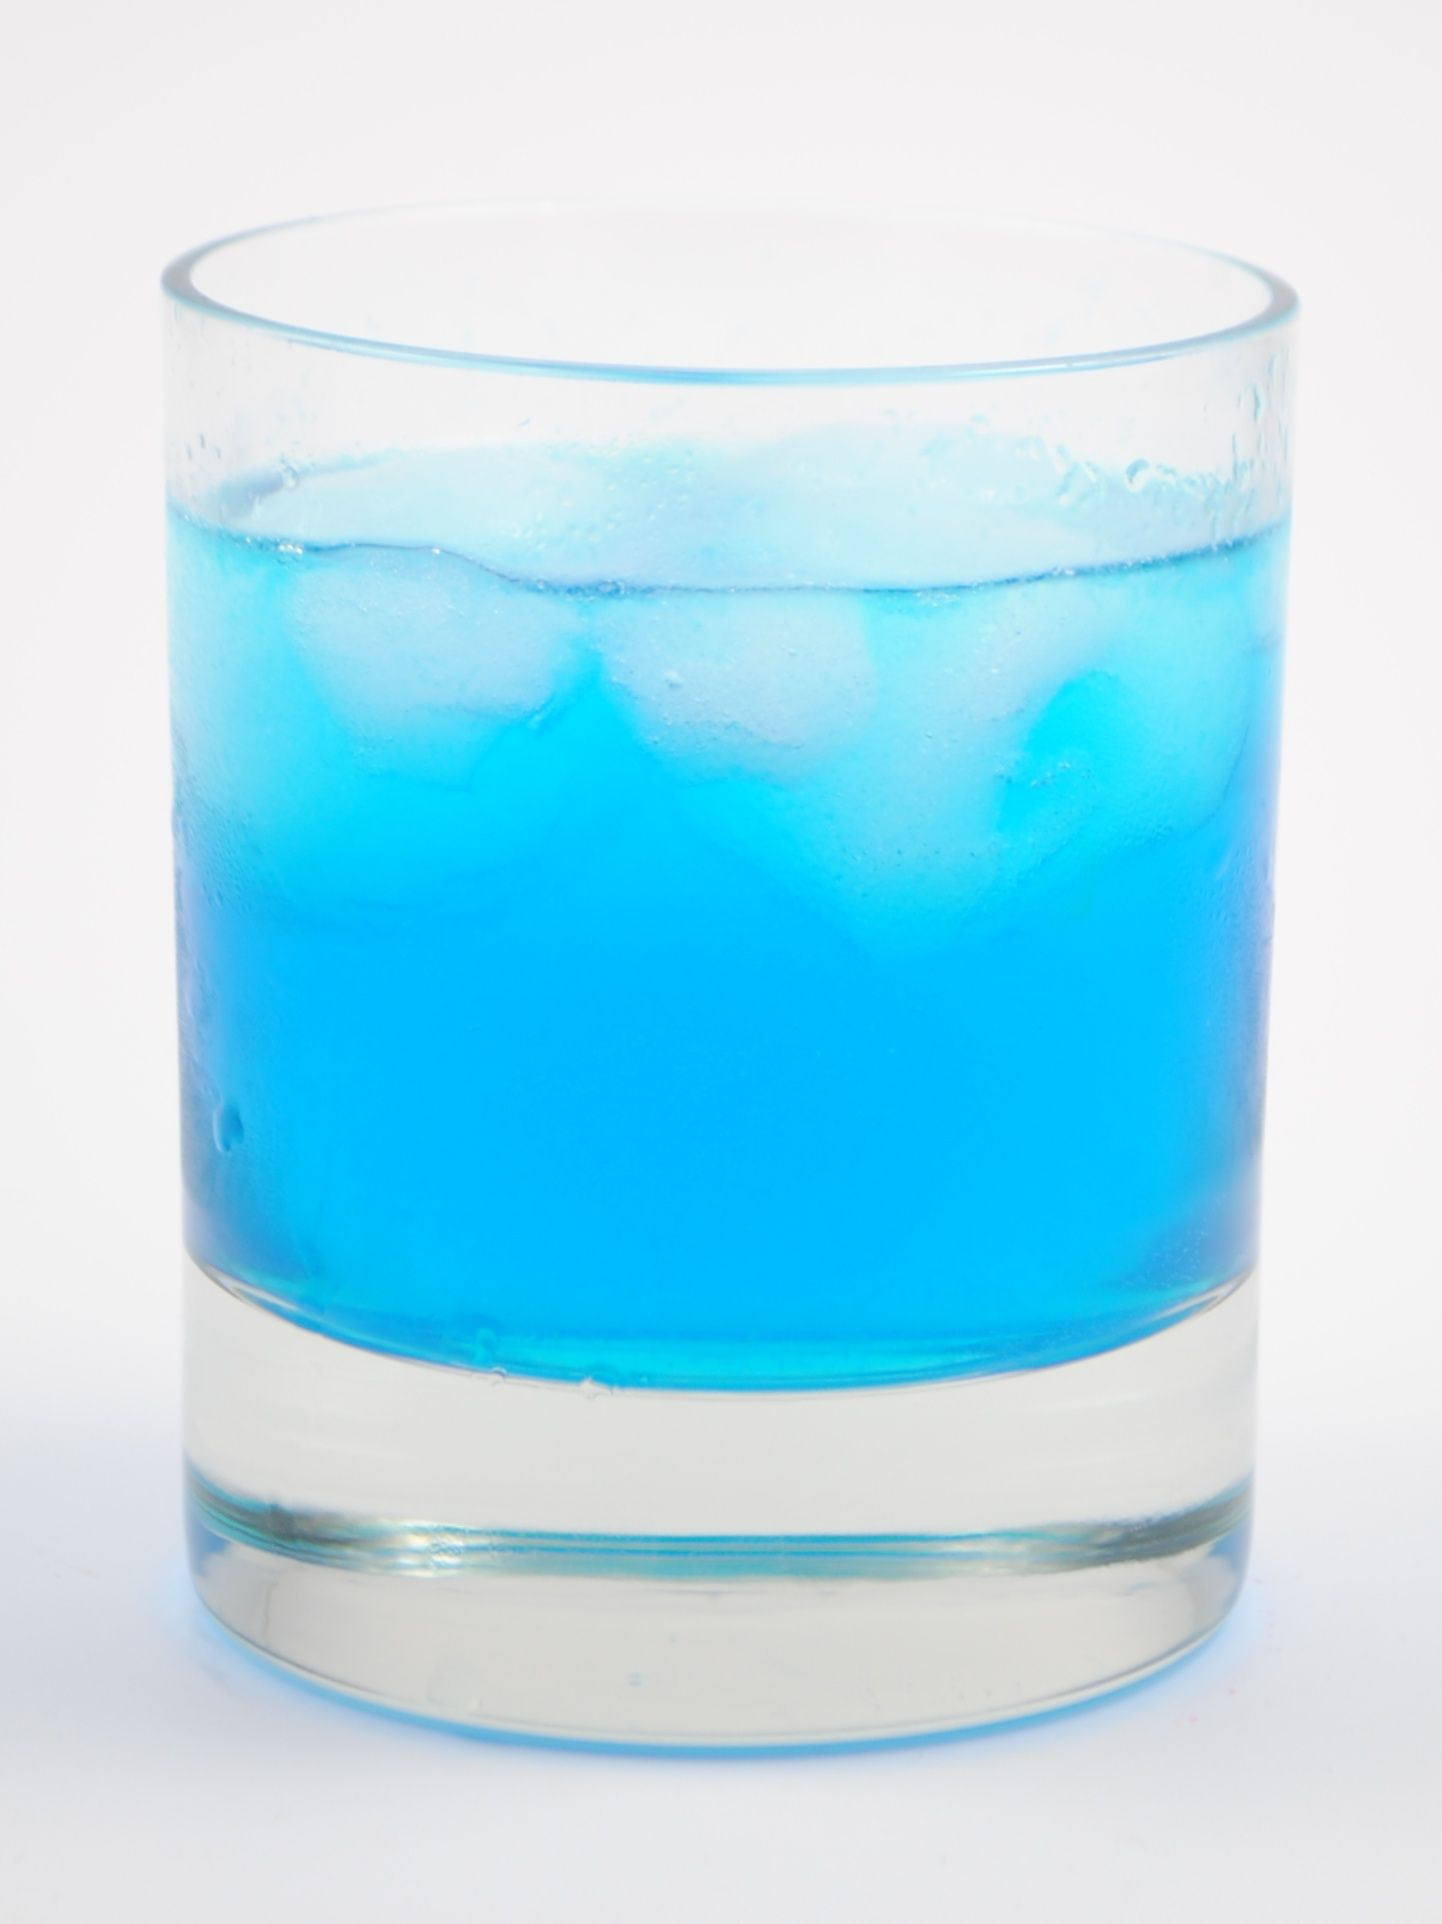 Papa smurf cocktail drink recipe 2 oz blue curacao 1 2 for Great alcoholic mixed drinks